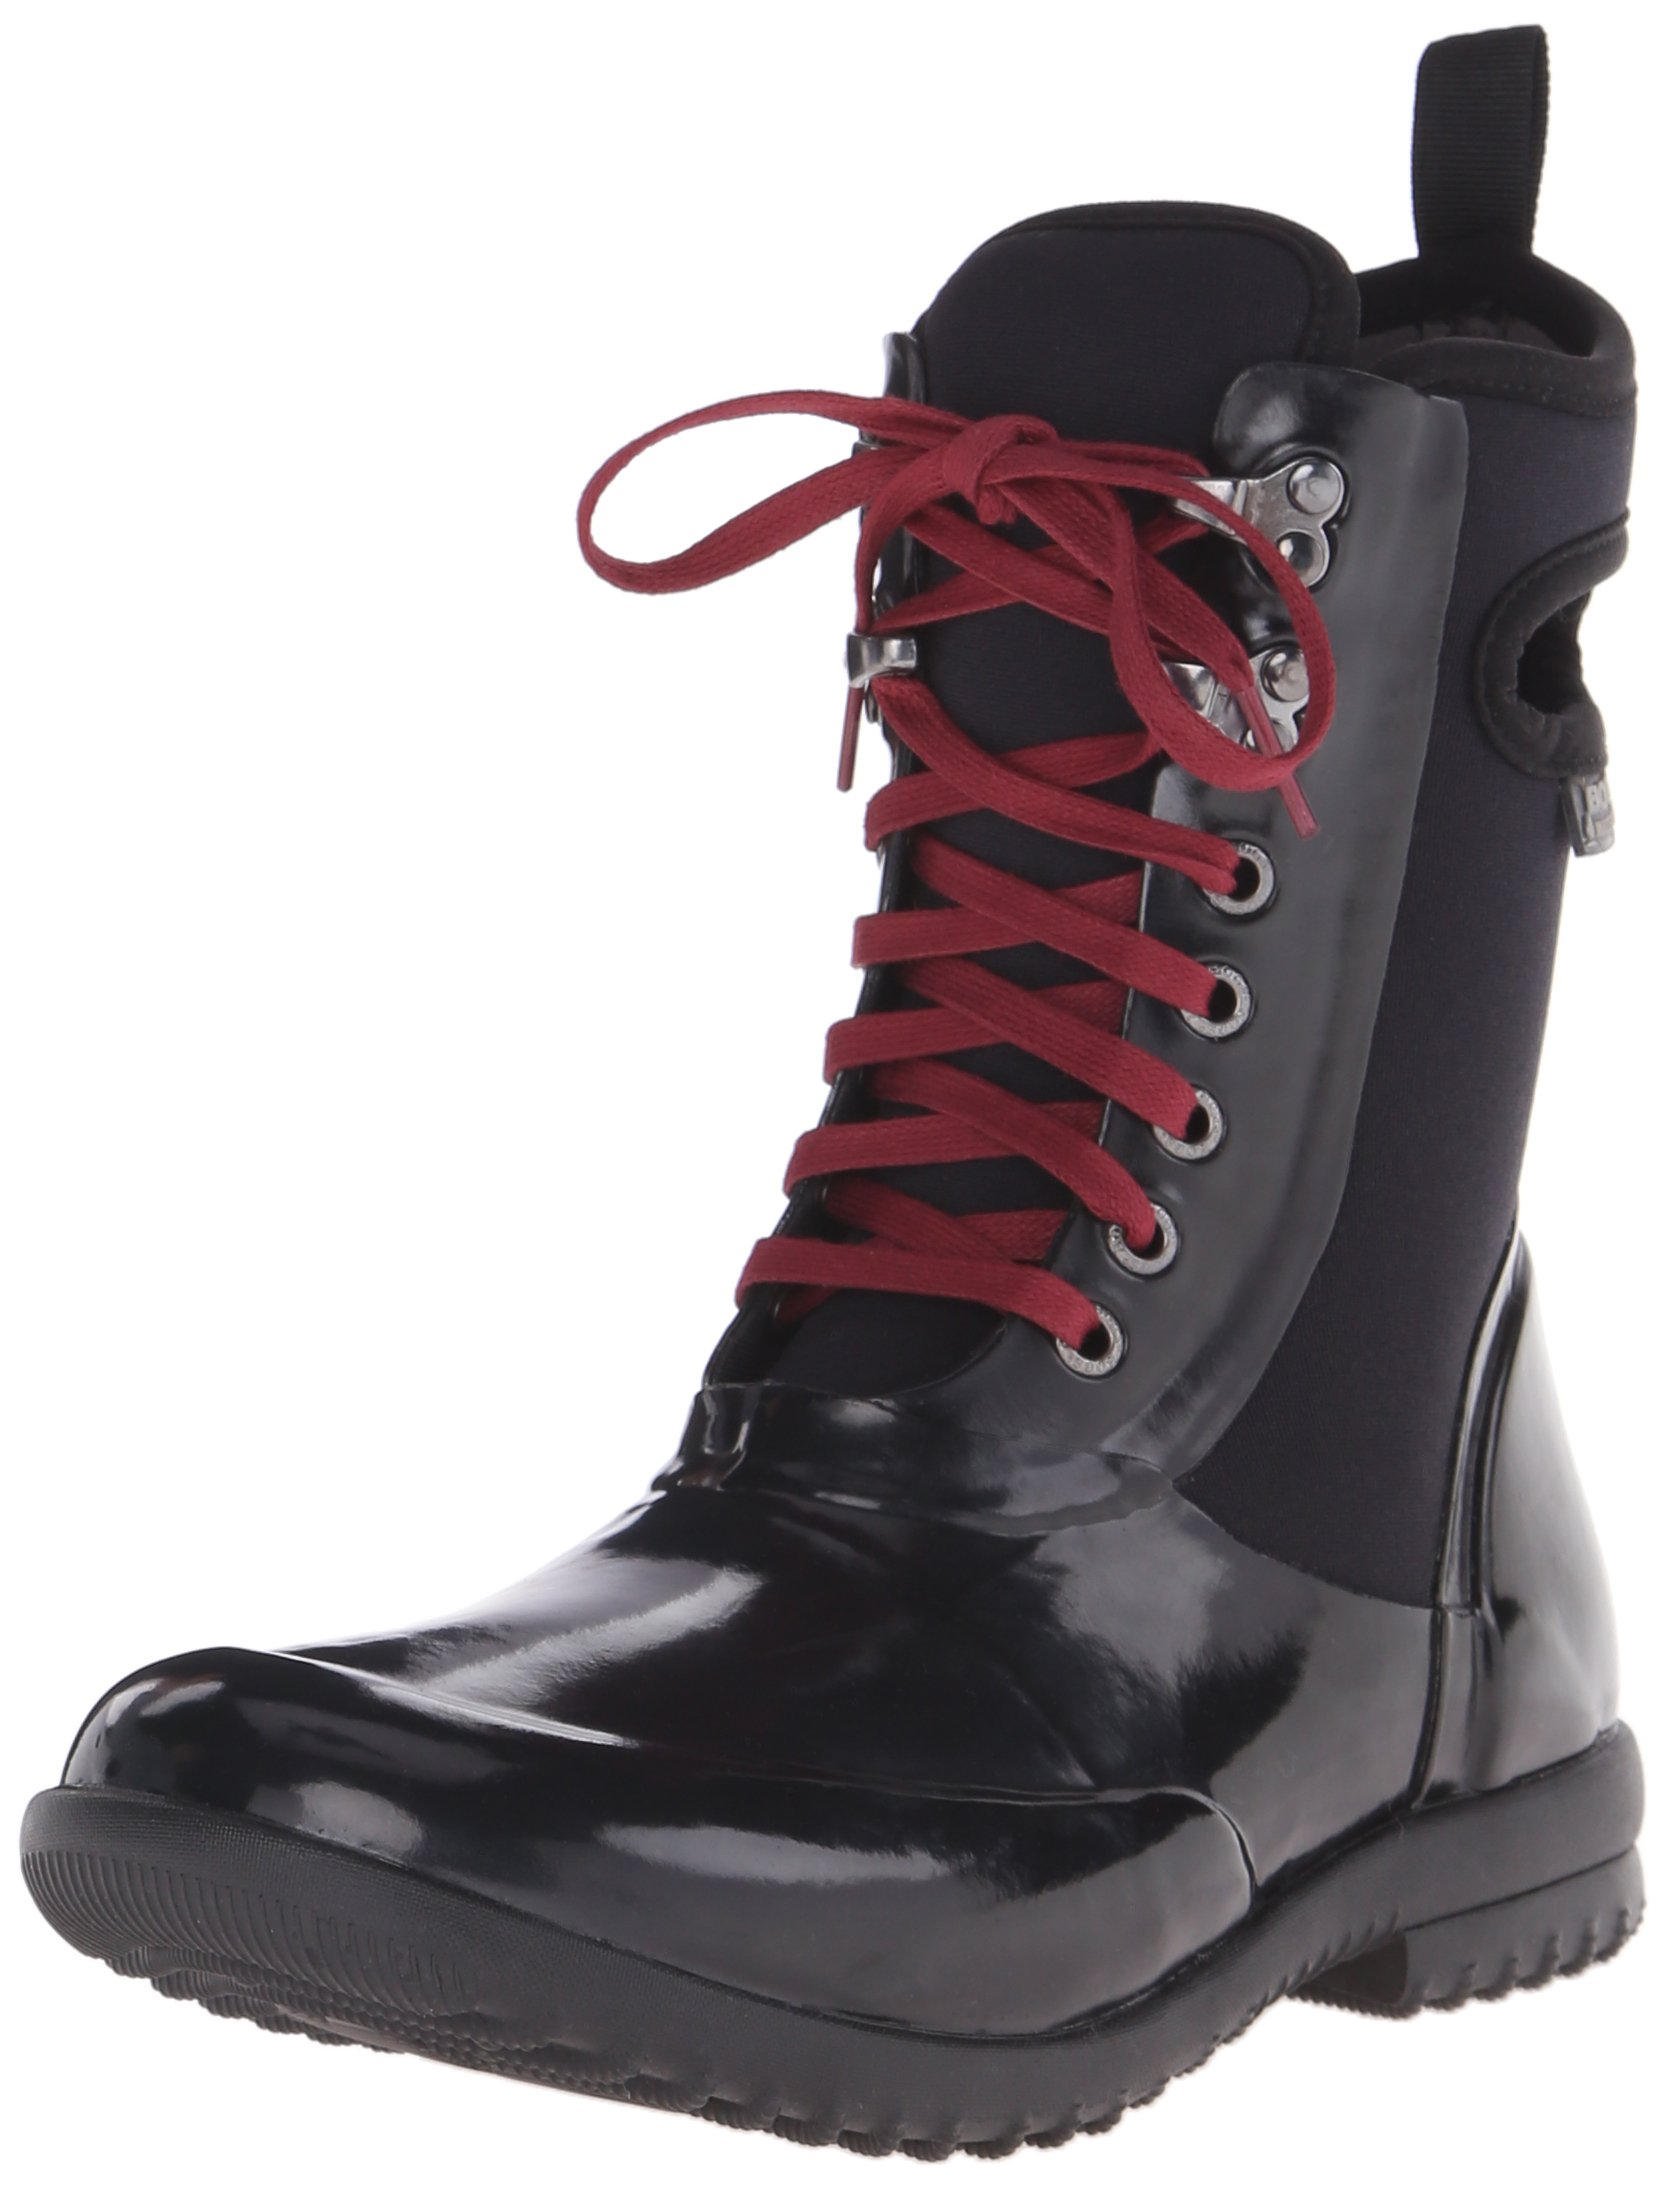 Bogs Women's Sidney Lace Solid All Weather Rain Boot, Black